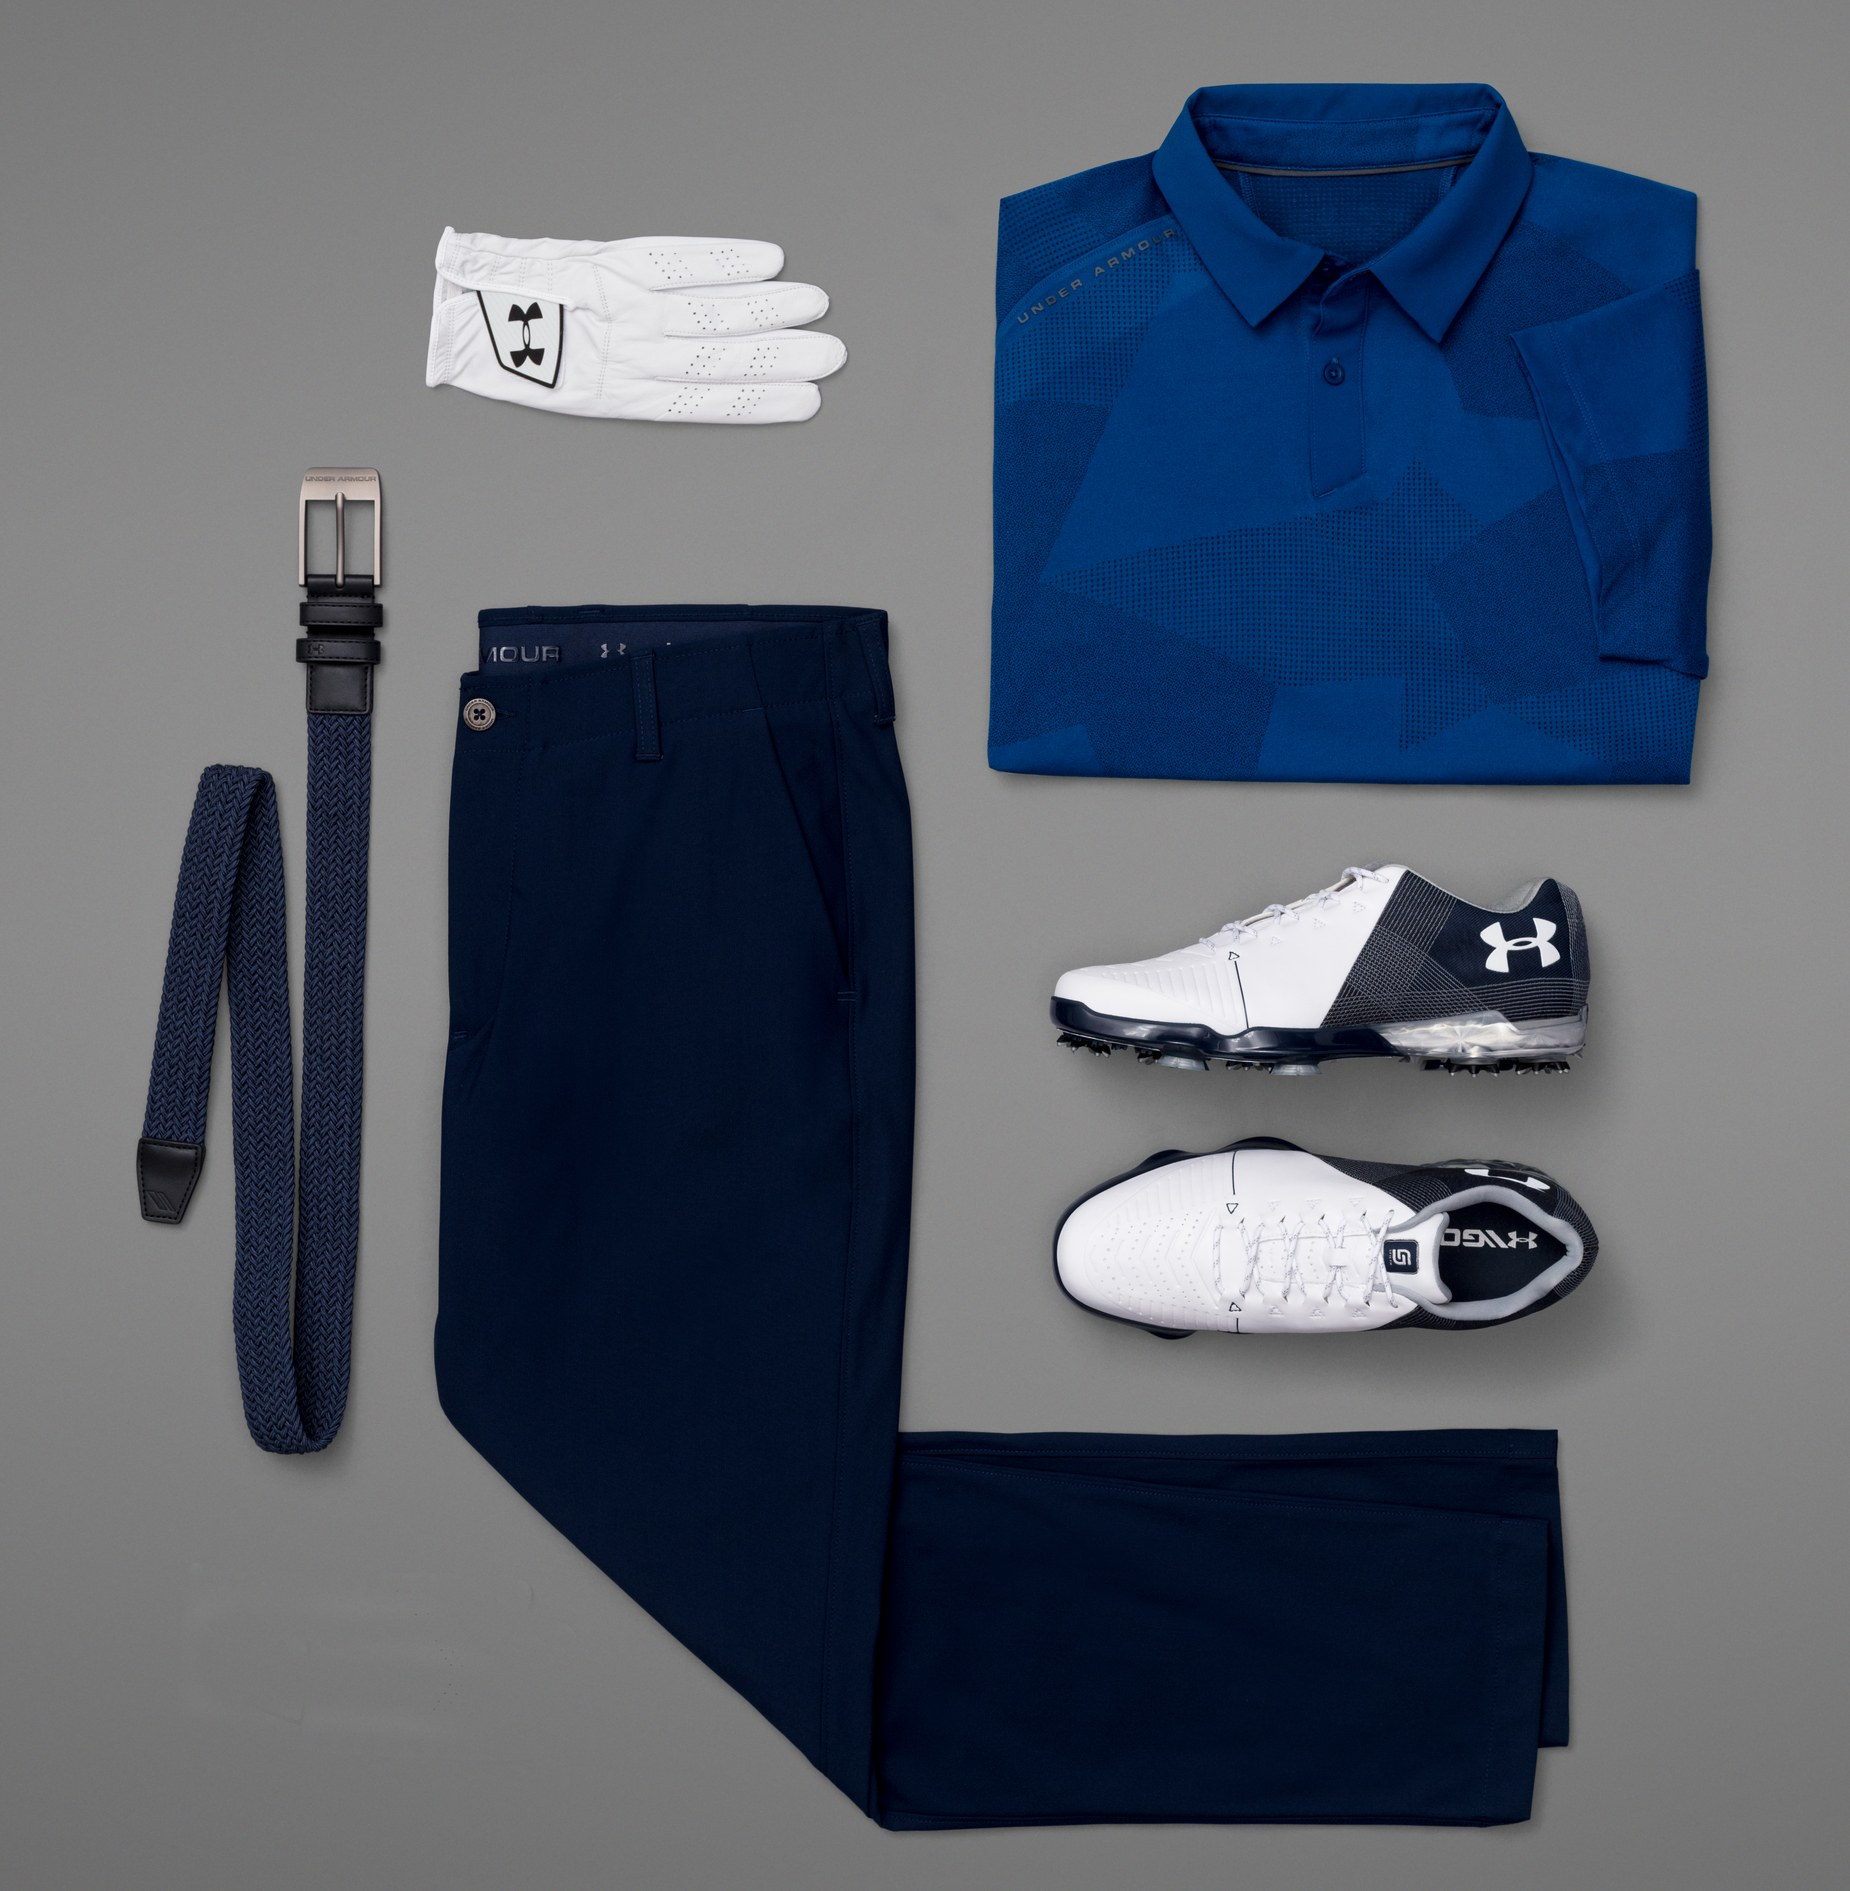 Jordan Spieth's Masters Outfits: Friday